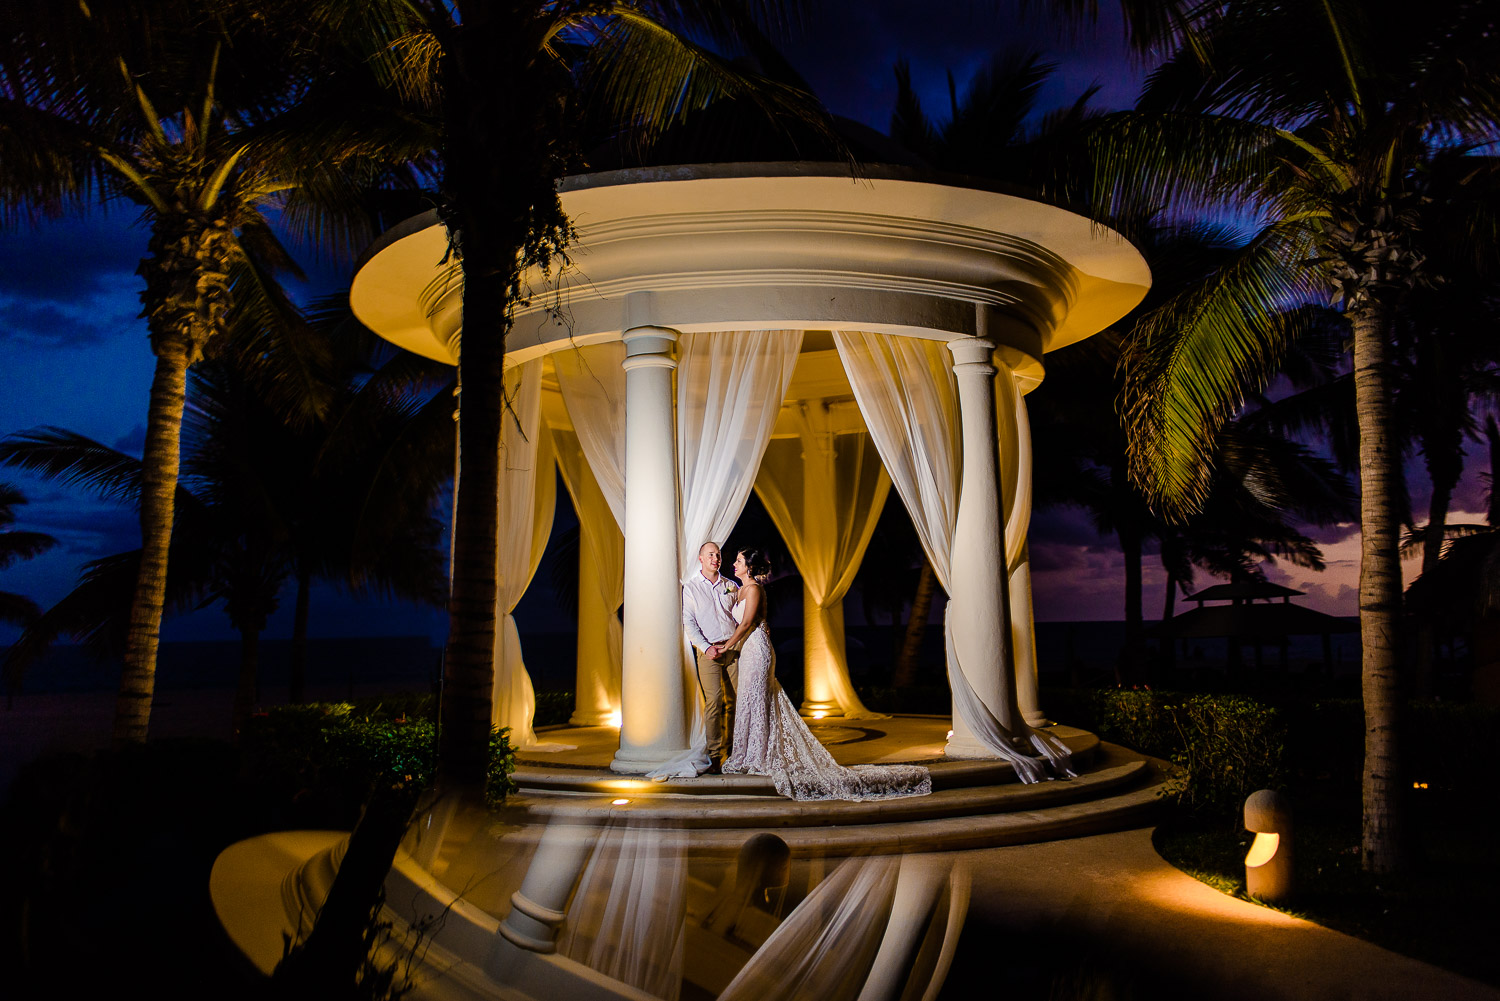 Hyatt Ziva Los Cabos Wedding. Bride and Groom during their sunset photo shoot at Hyatt Ziva Los Cabos Resort